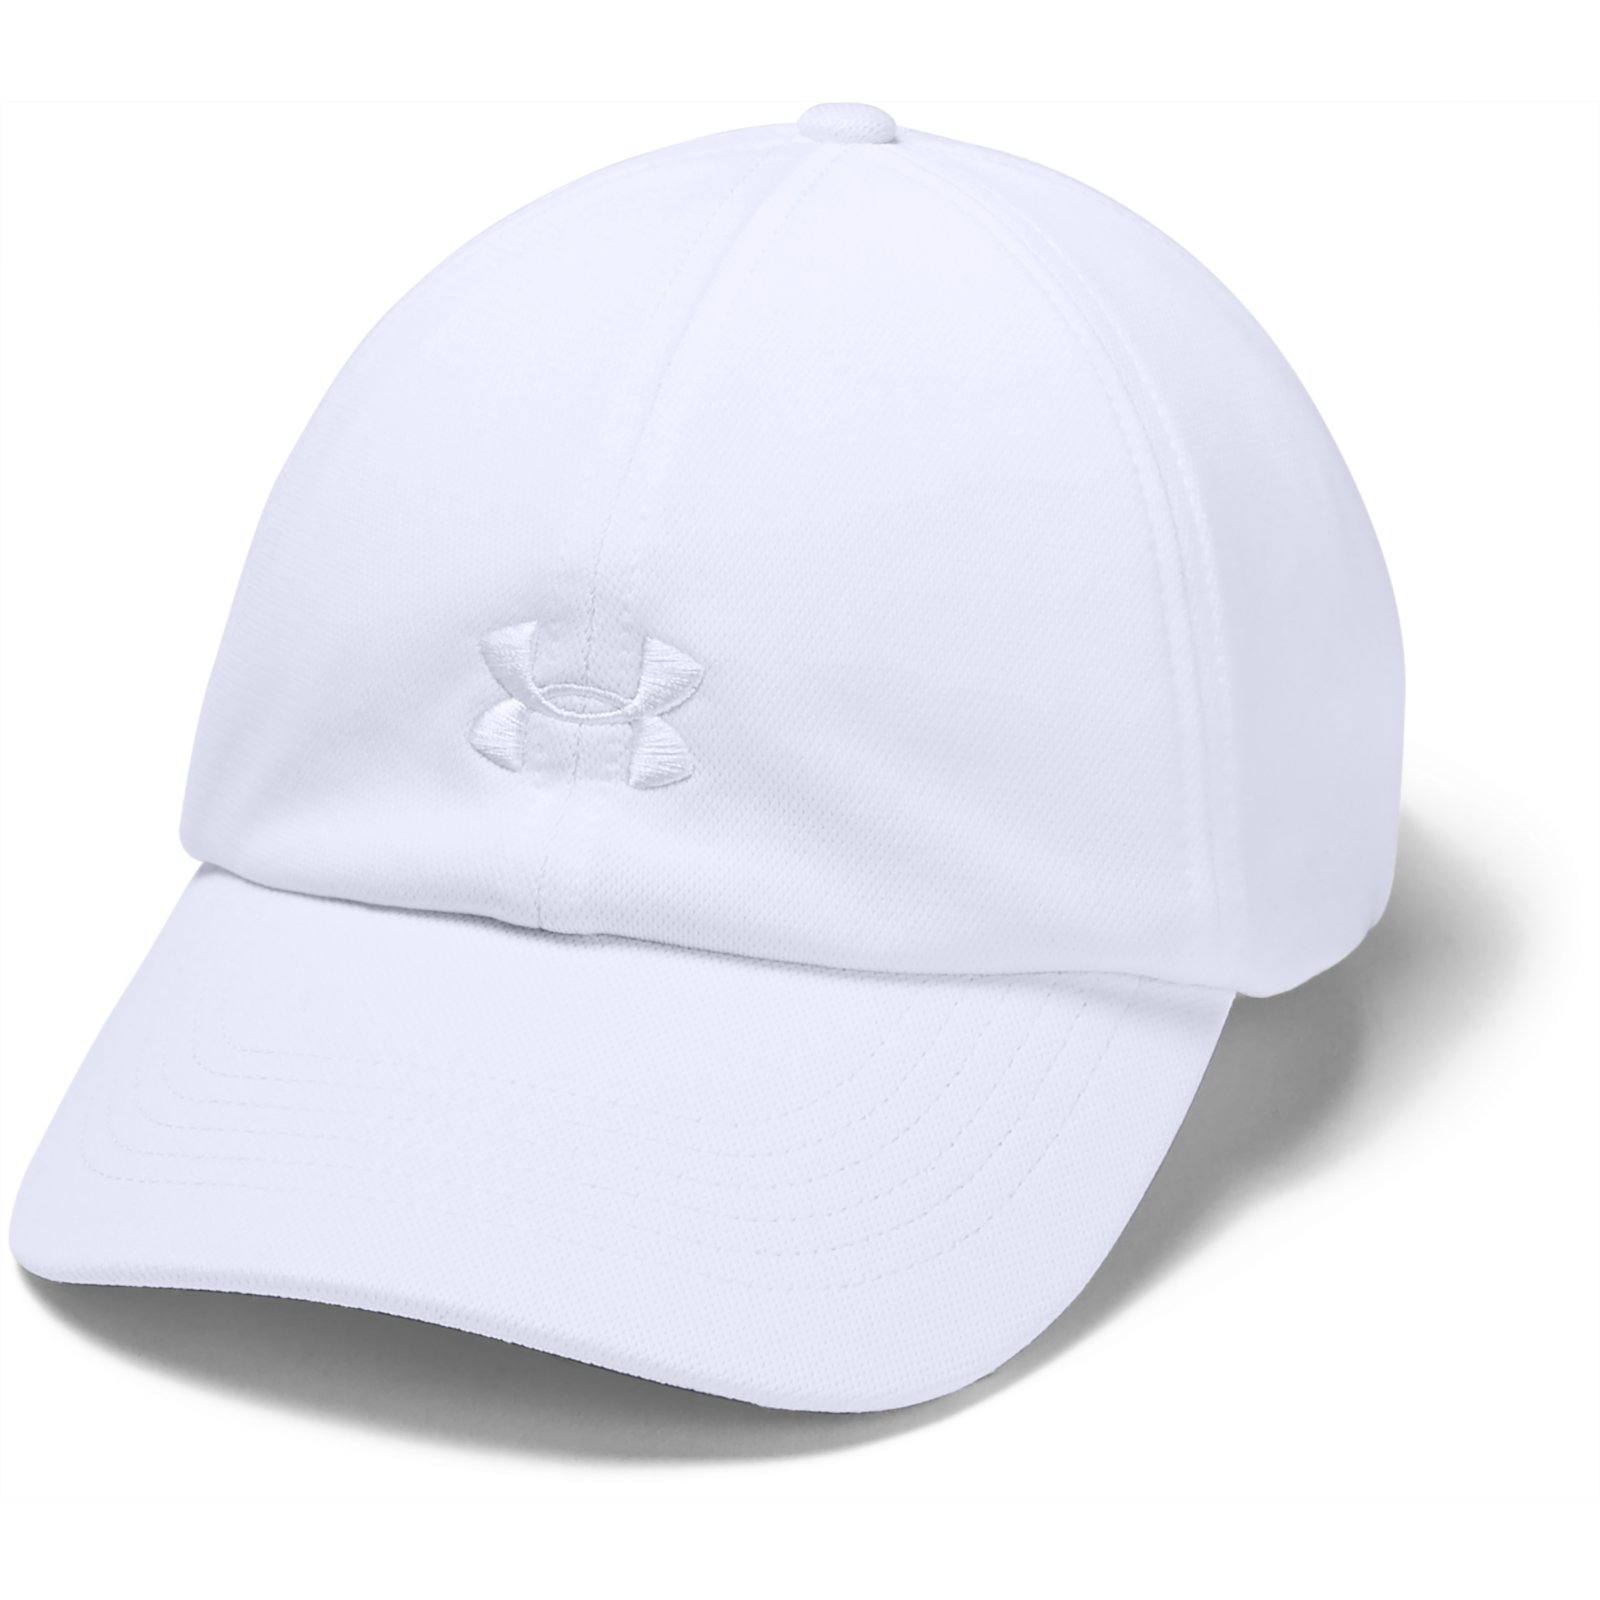 Кепка Play Up Cap Under Armour Белый